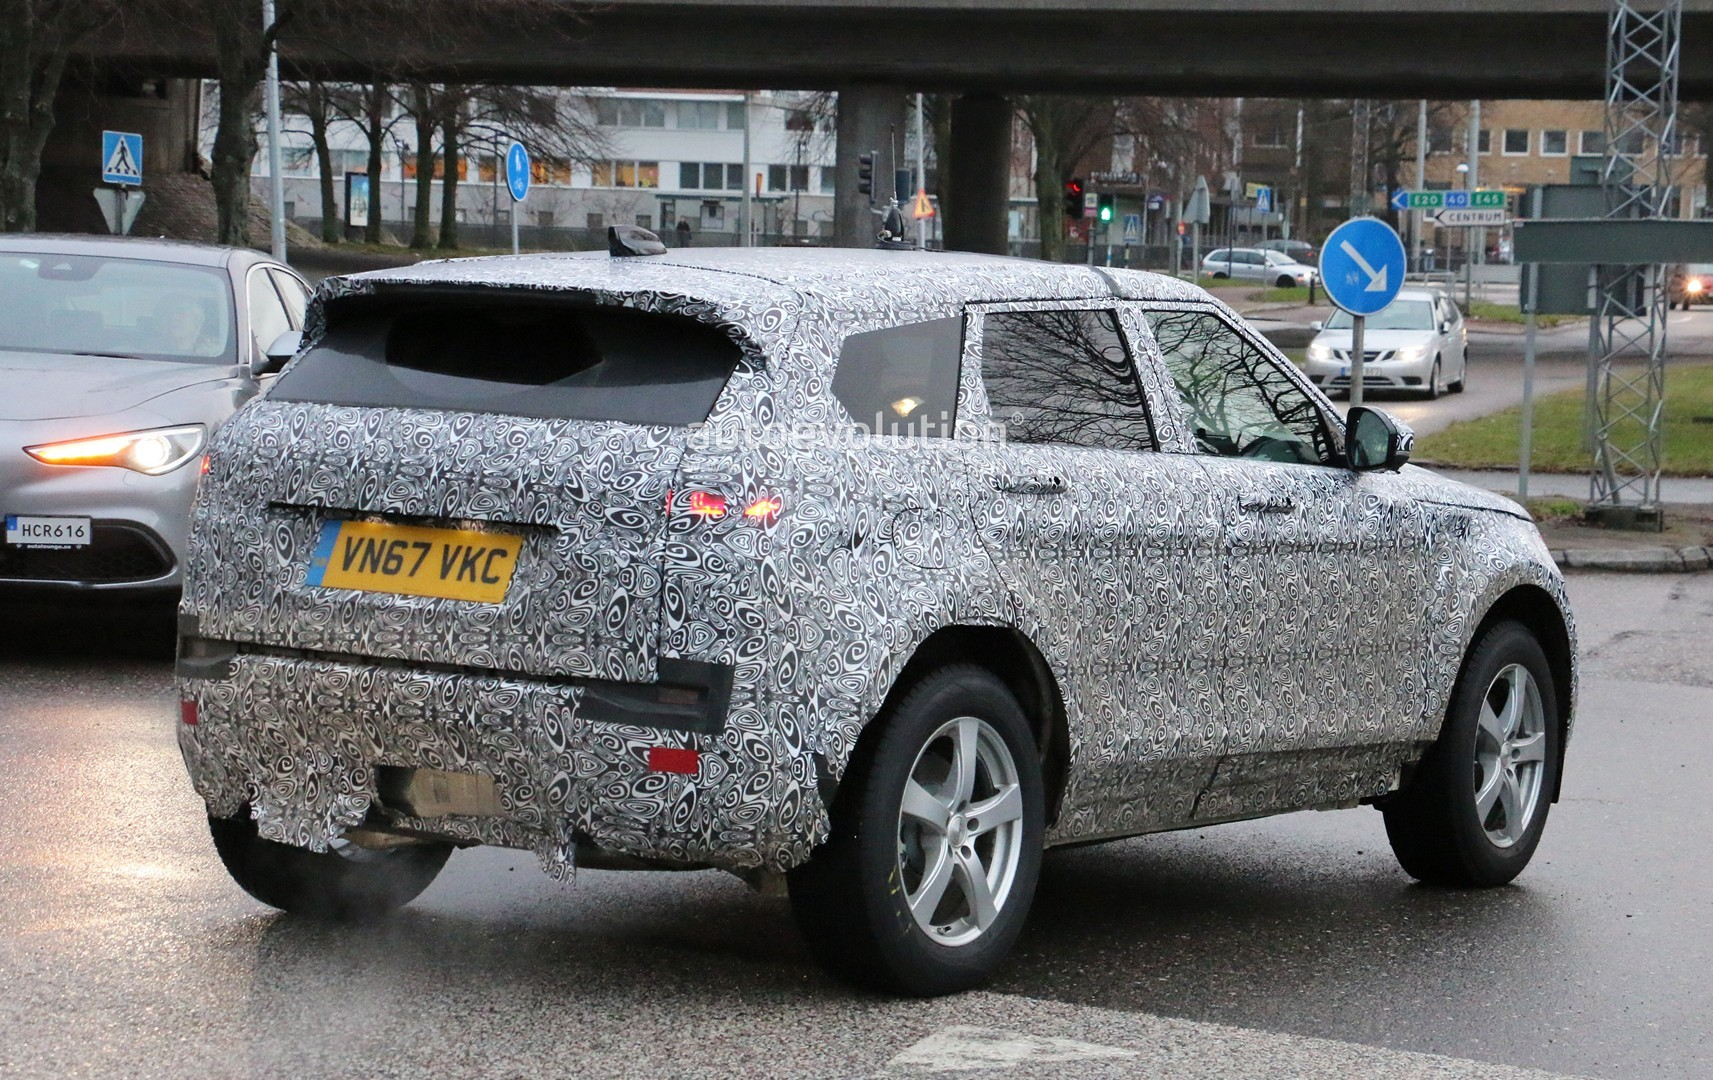 2018 - [Land Rover] Range Rover Evoque II - Page 2 2019-range-rover-evoque-has-scraped-its-camo-most-likely-due-to-off-roading_10